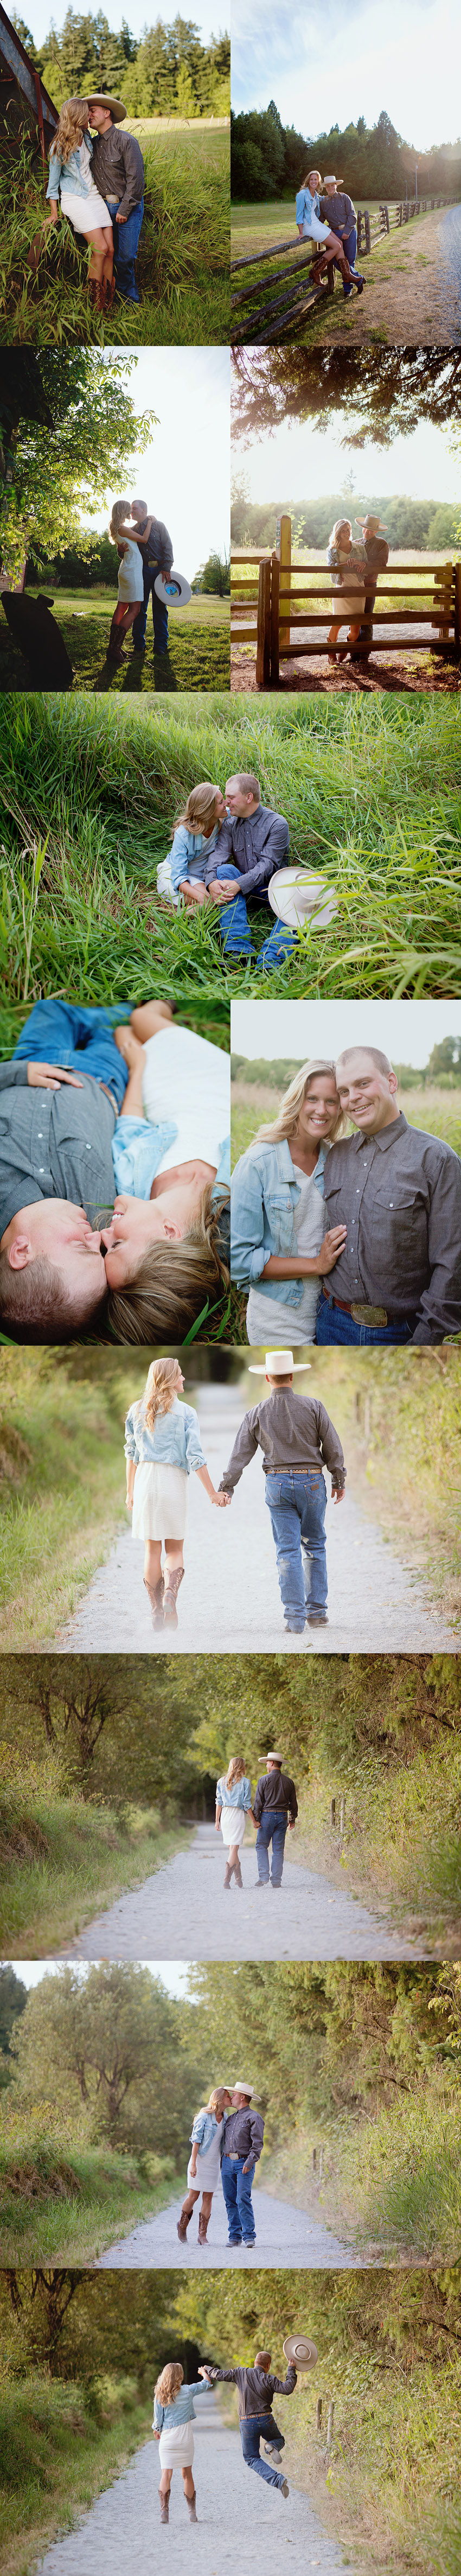 campbell valley langley engagement photographer1